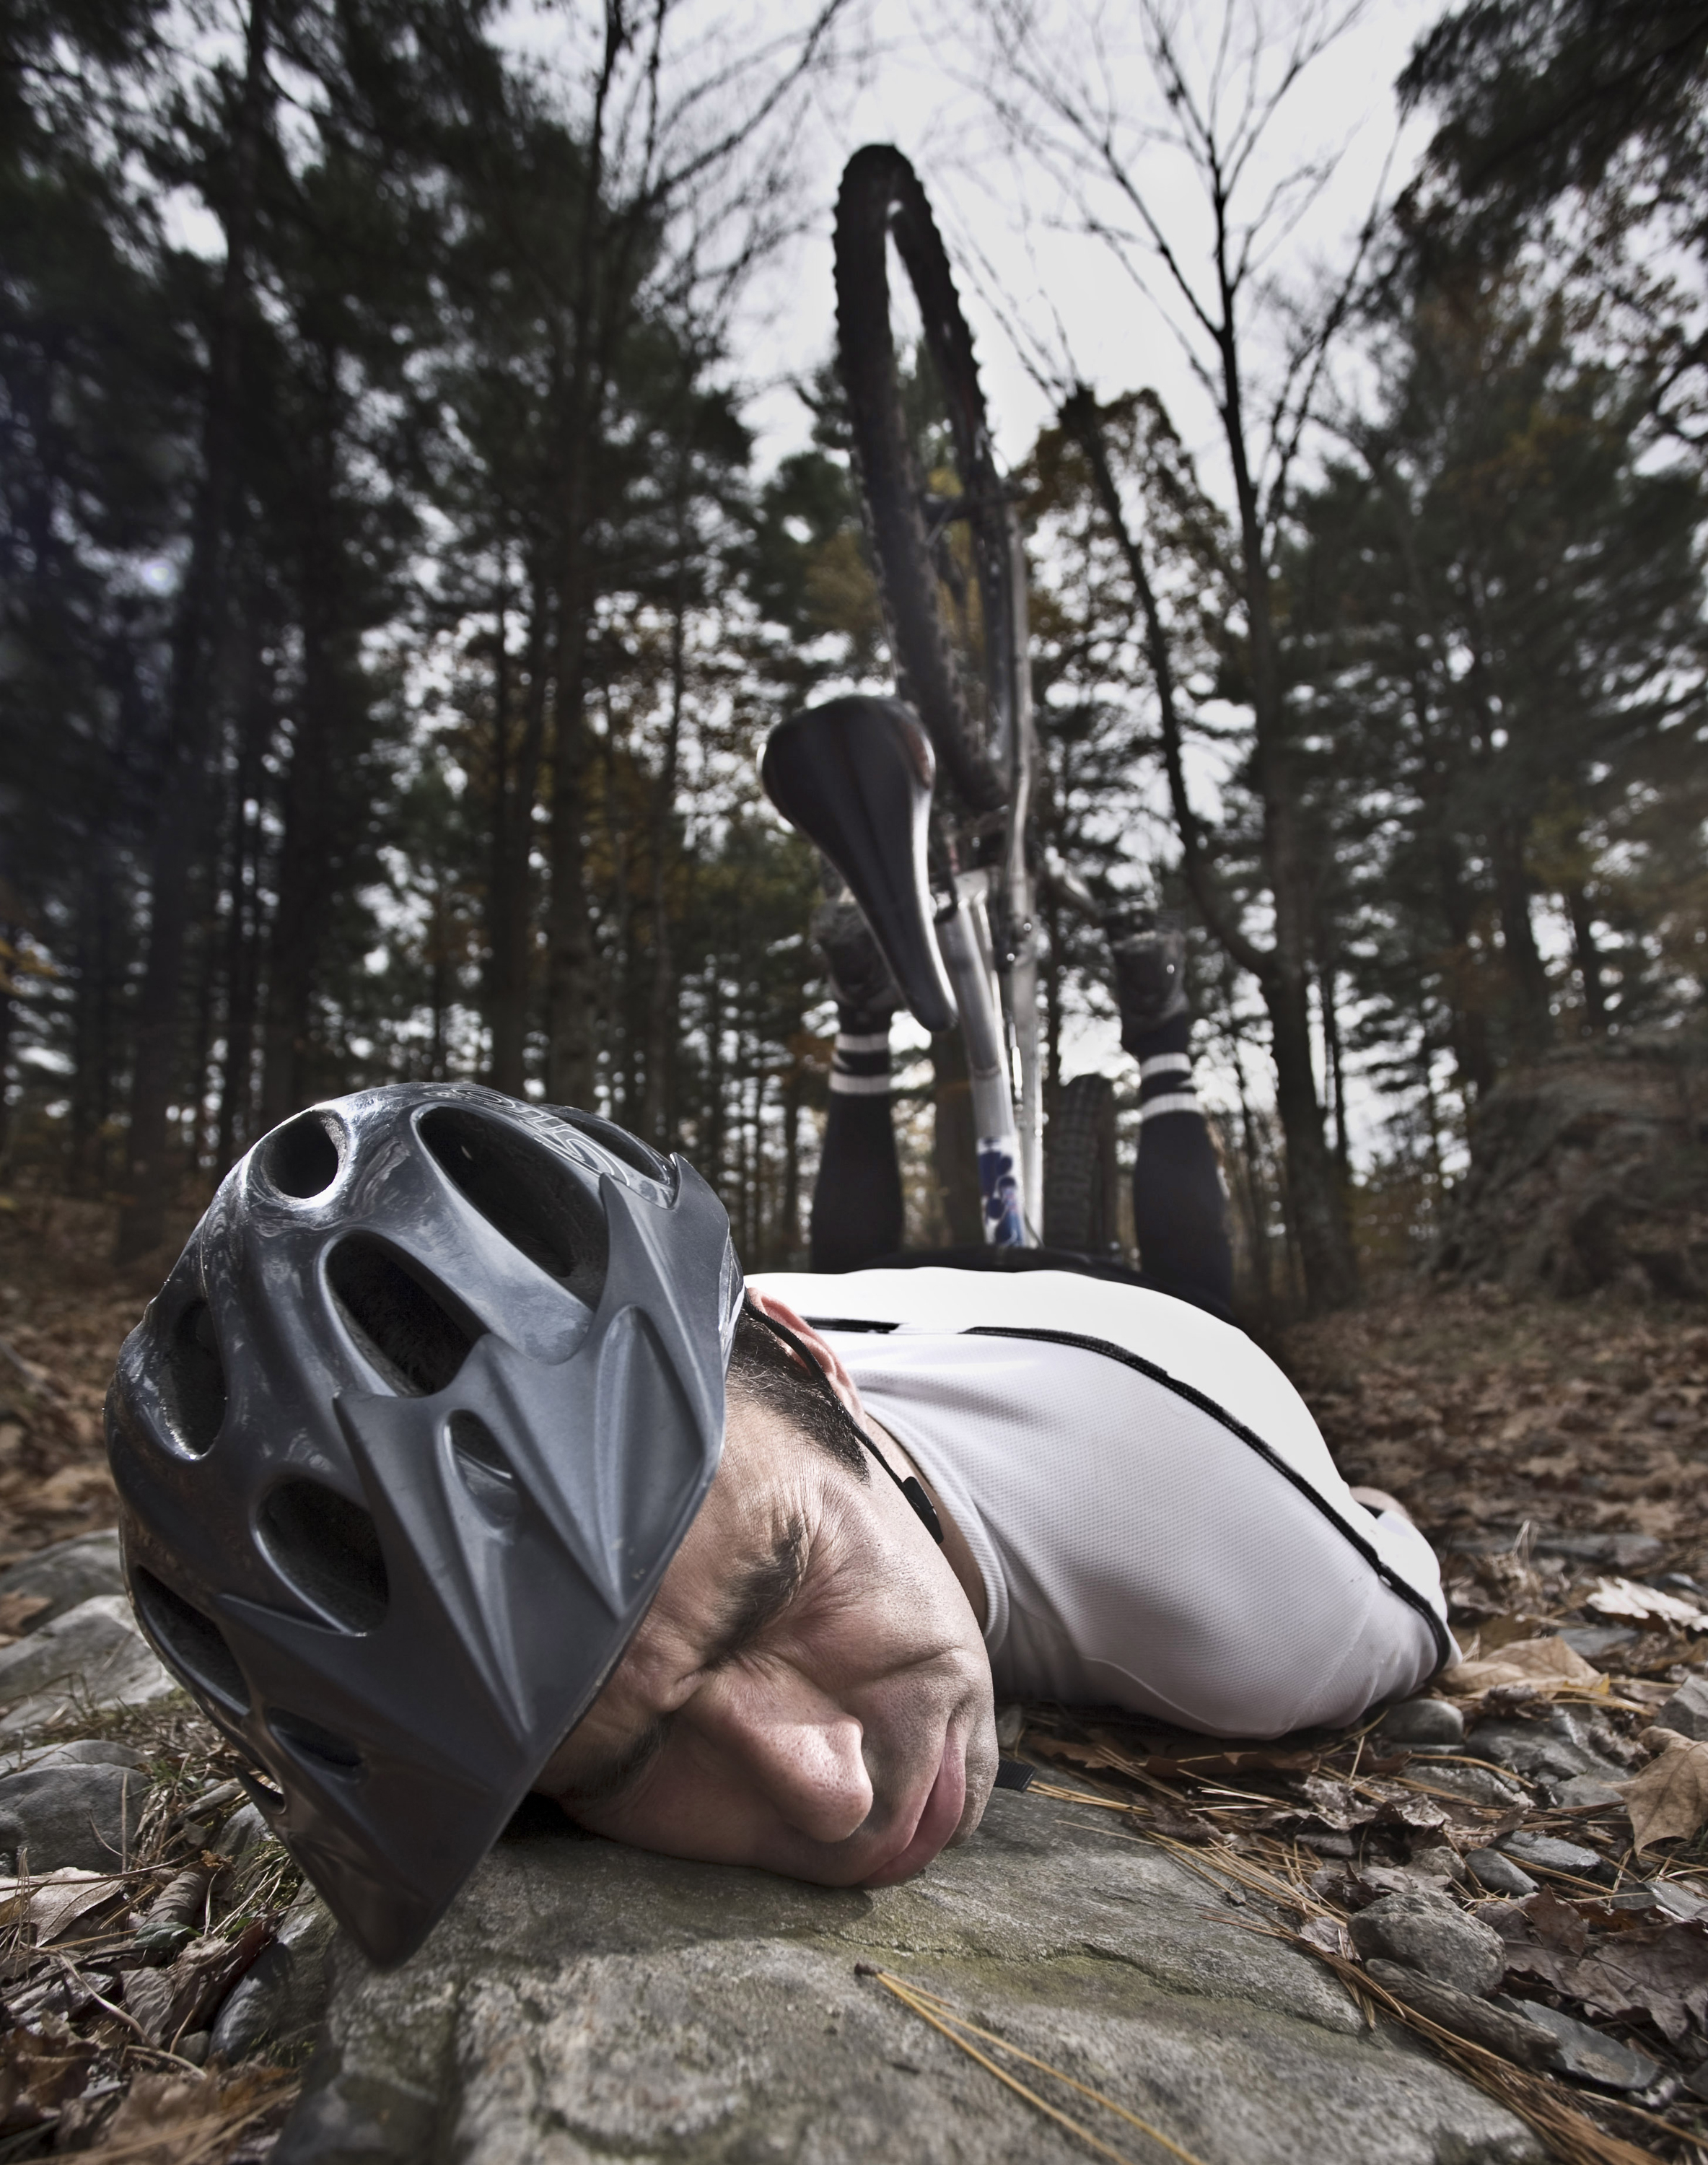 Photo of a bicycle accident